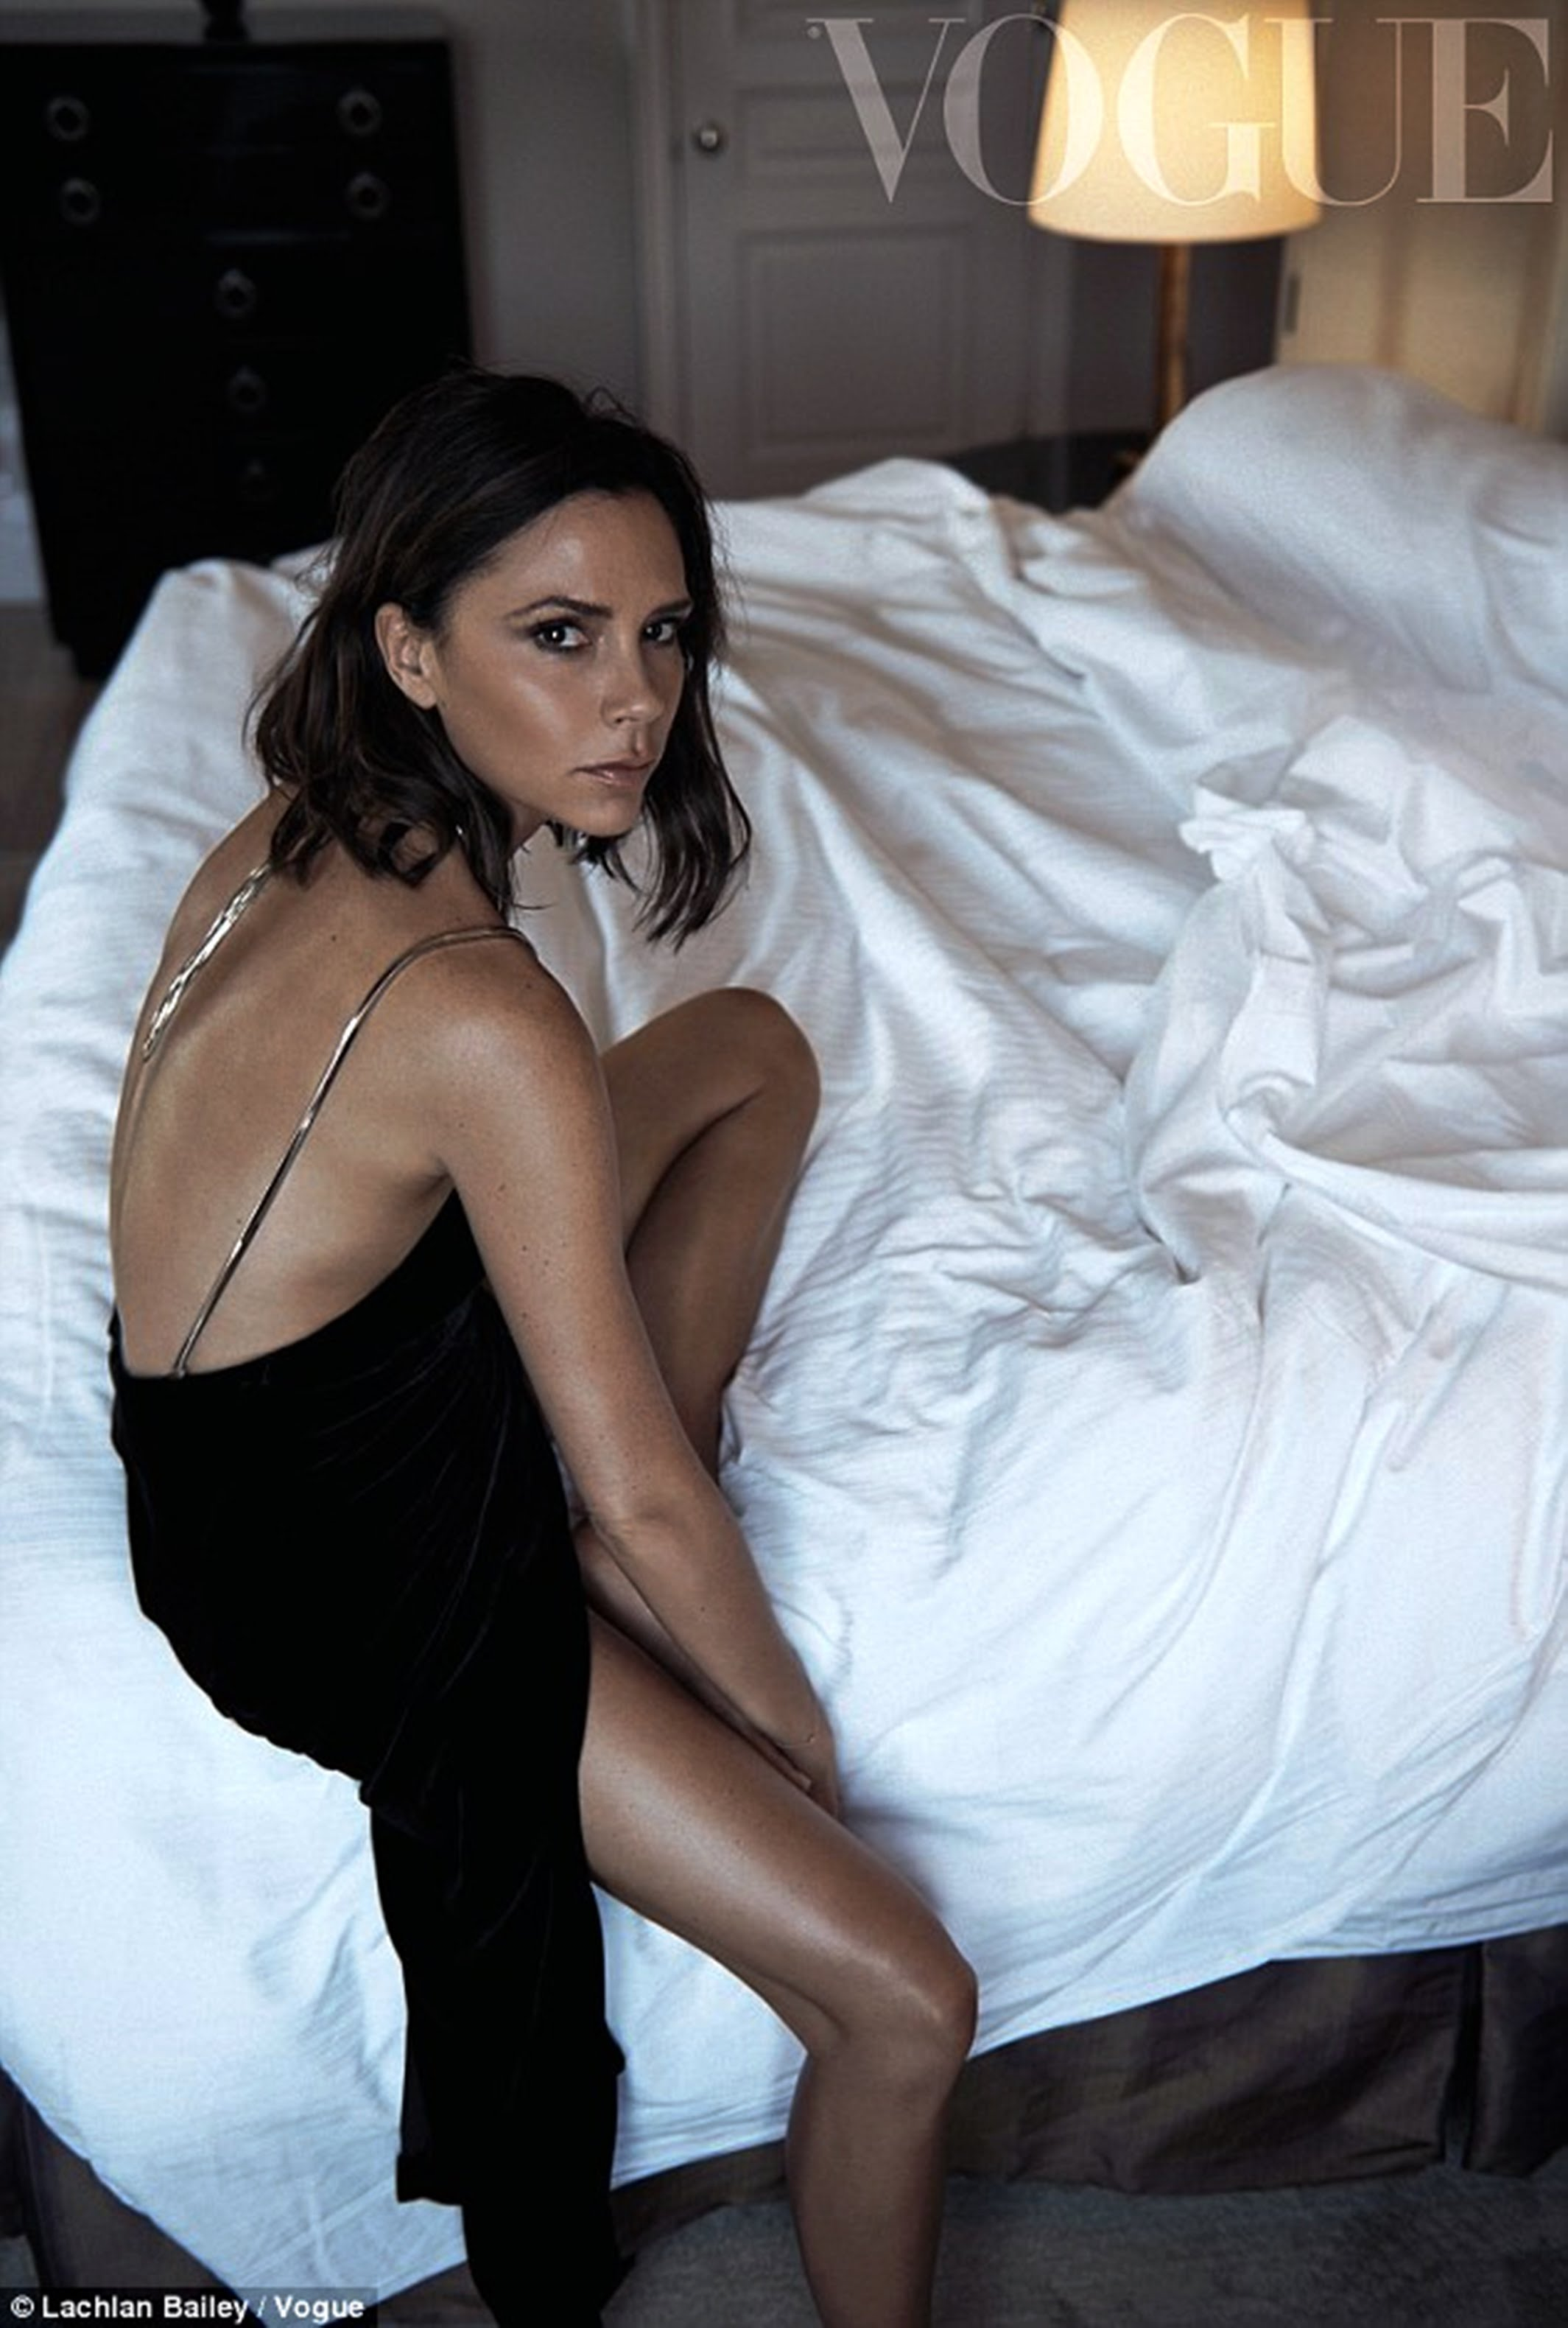 But why had Victoria Beckham been unwittingly chosen to bear this obnoxious caricature? It can't be ignored that her gender played a role. What man has been similarly, needlessly demonised by the press? - Words by Emma Cook